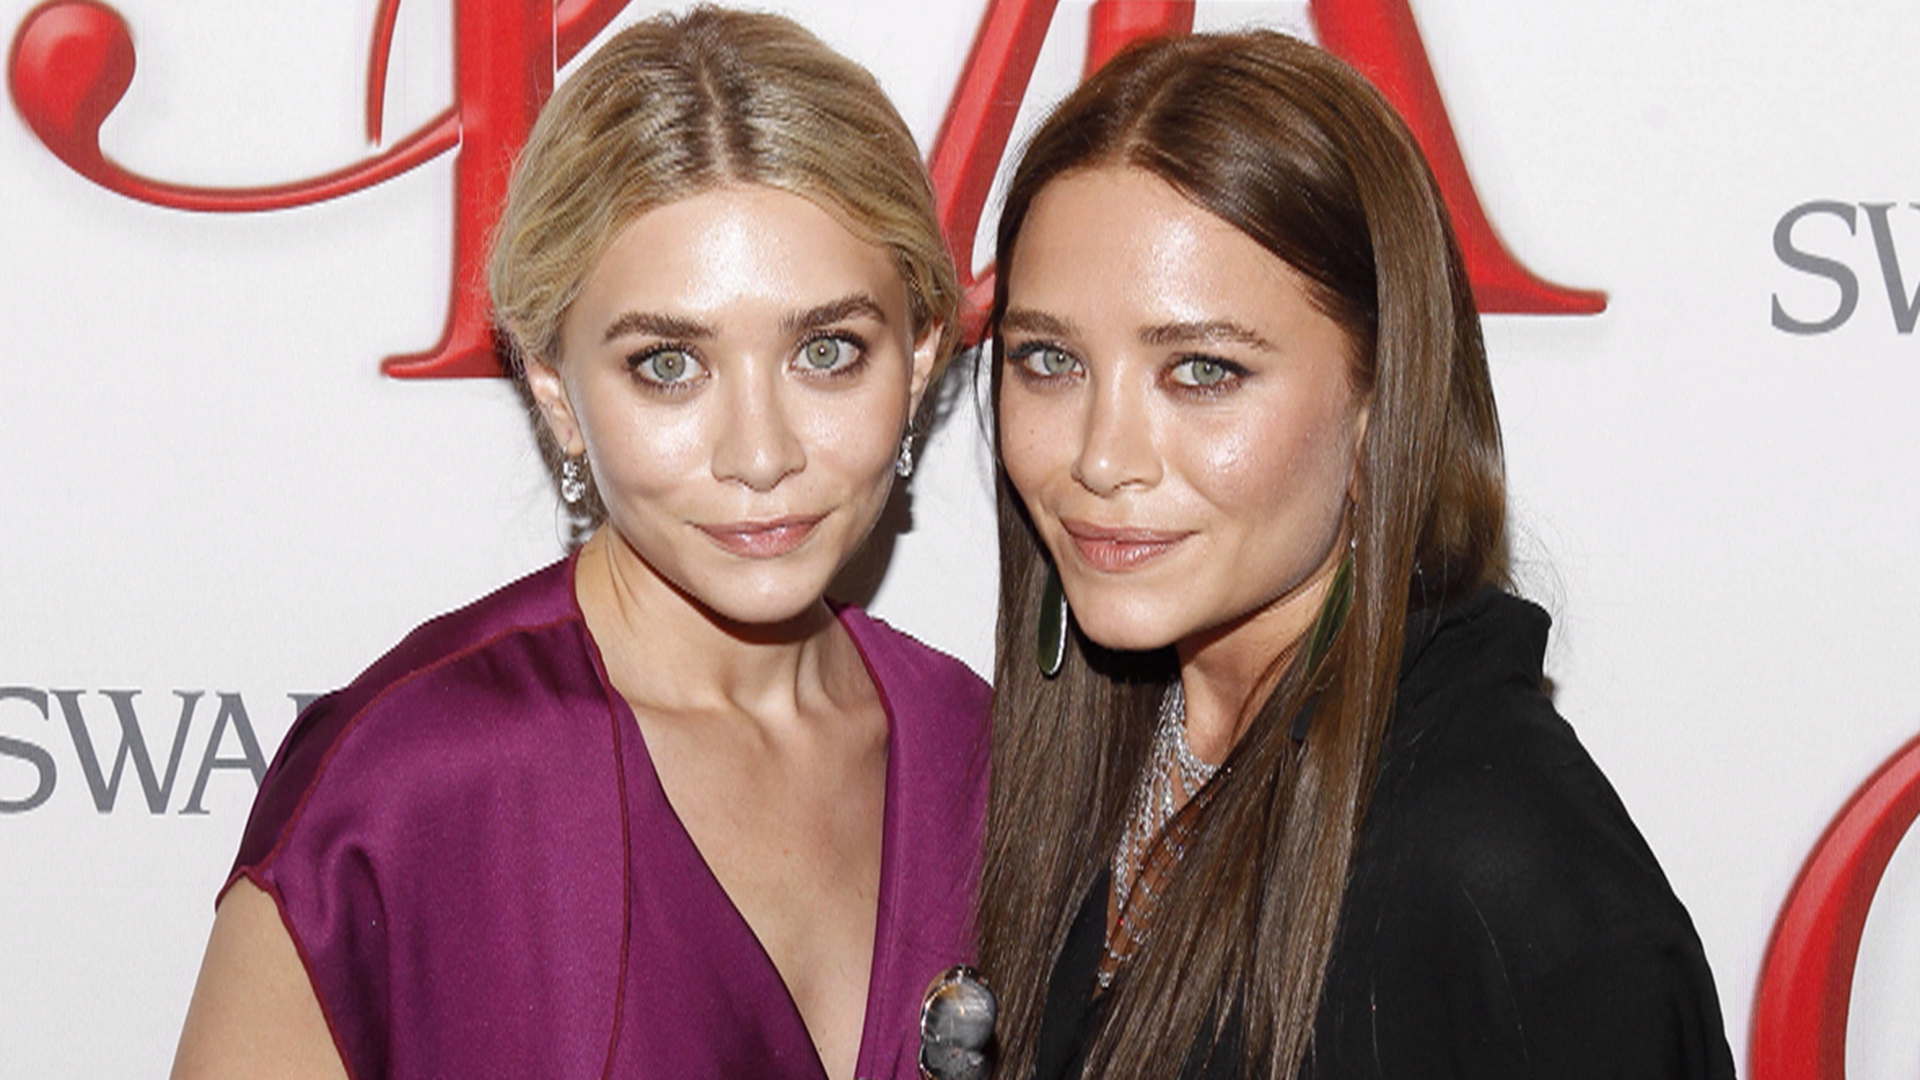 Fuller House cast has given up on ting the Olsen twins to